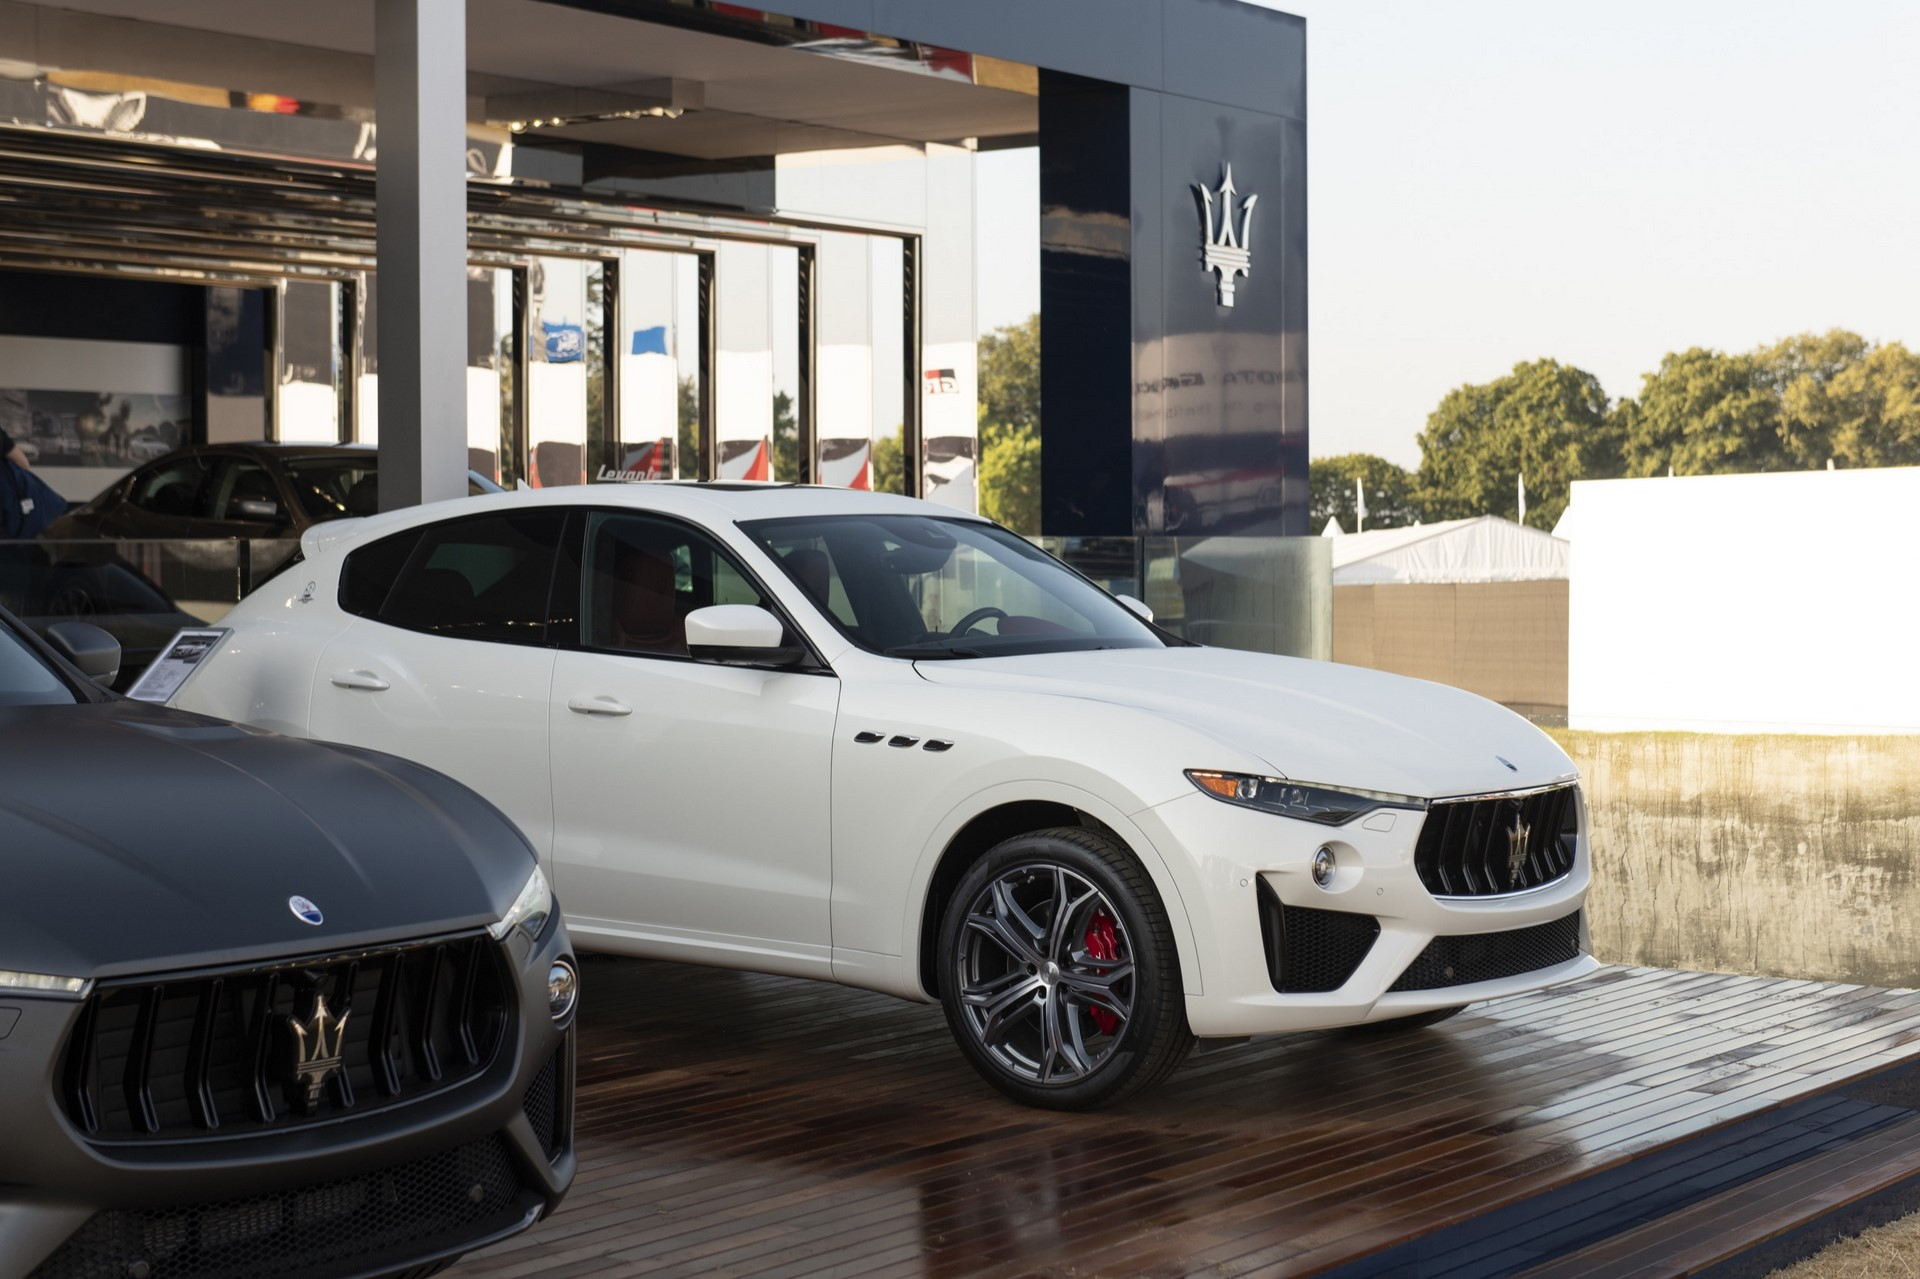 Maserati Levante GTS - Maserati at Goodwood Festival of Speed